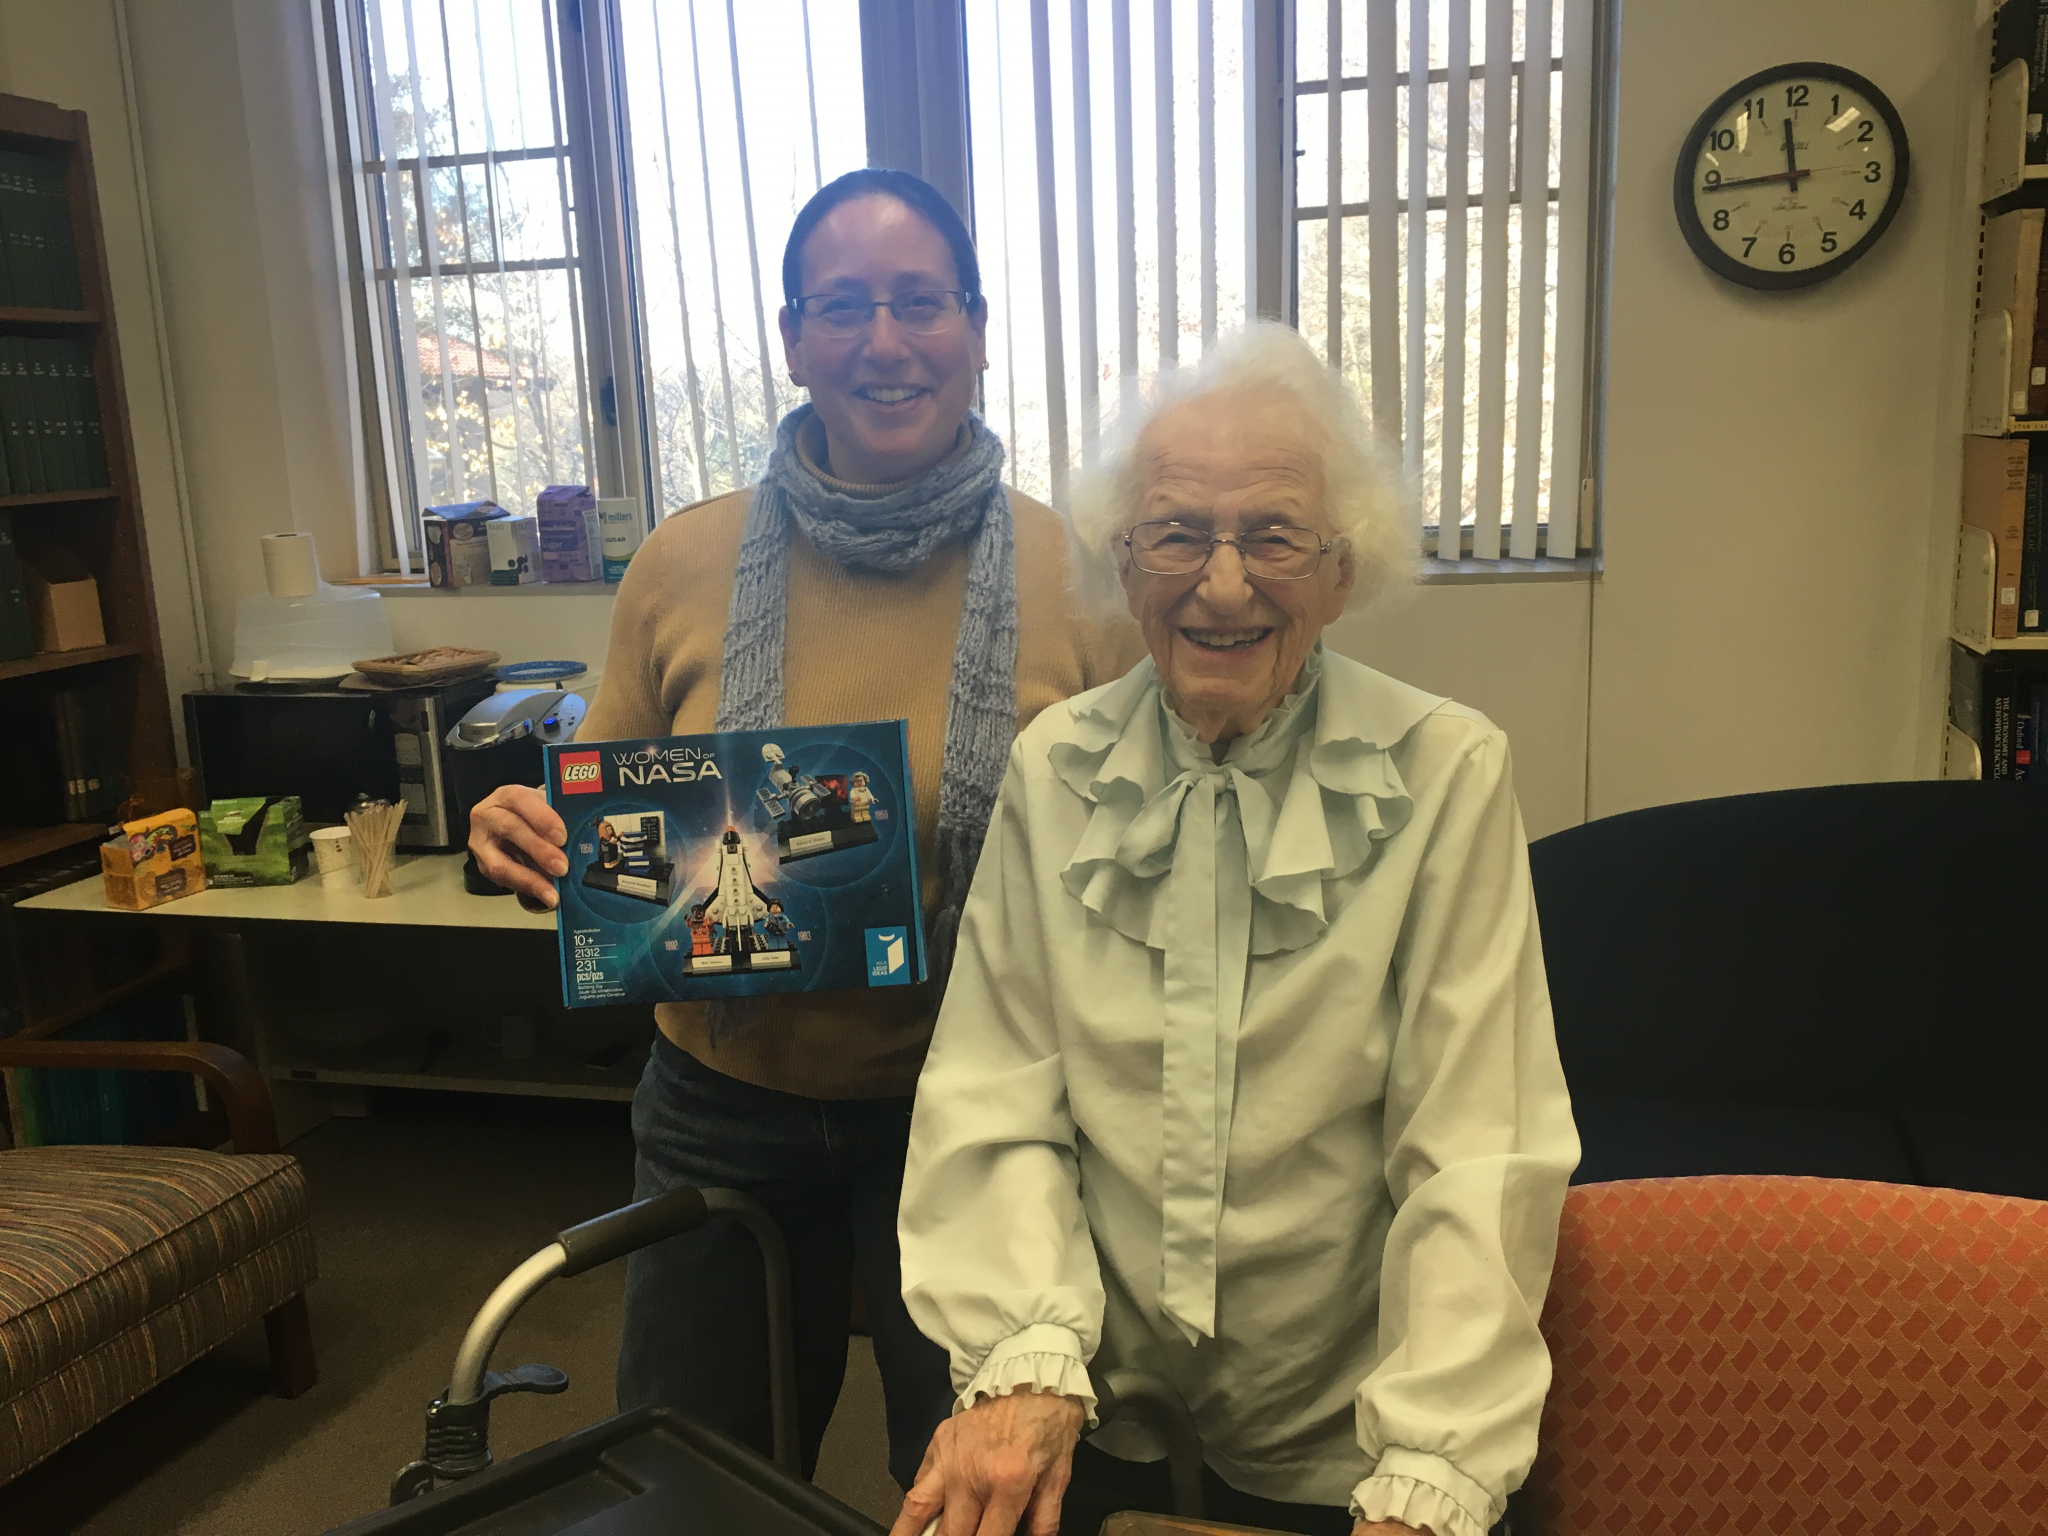 Alycia Weinberger (left) and Nancy Grace Roman (right) meet on the Earth and Planets Laboratory campus after an astronomy seminar. Roman had just signed Weinberger's Lego Women of NASA set. Photo Credit: Adriana Kuehnel